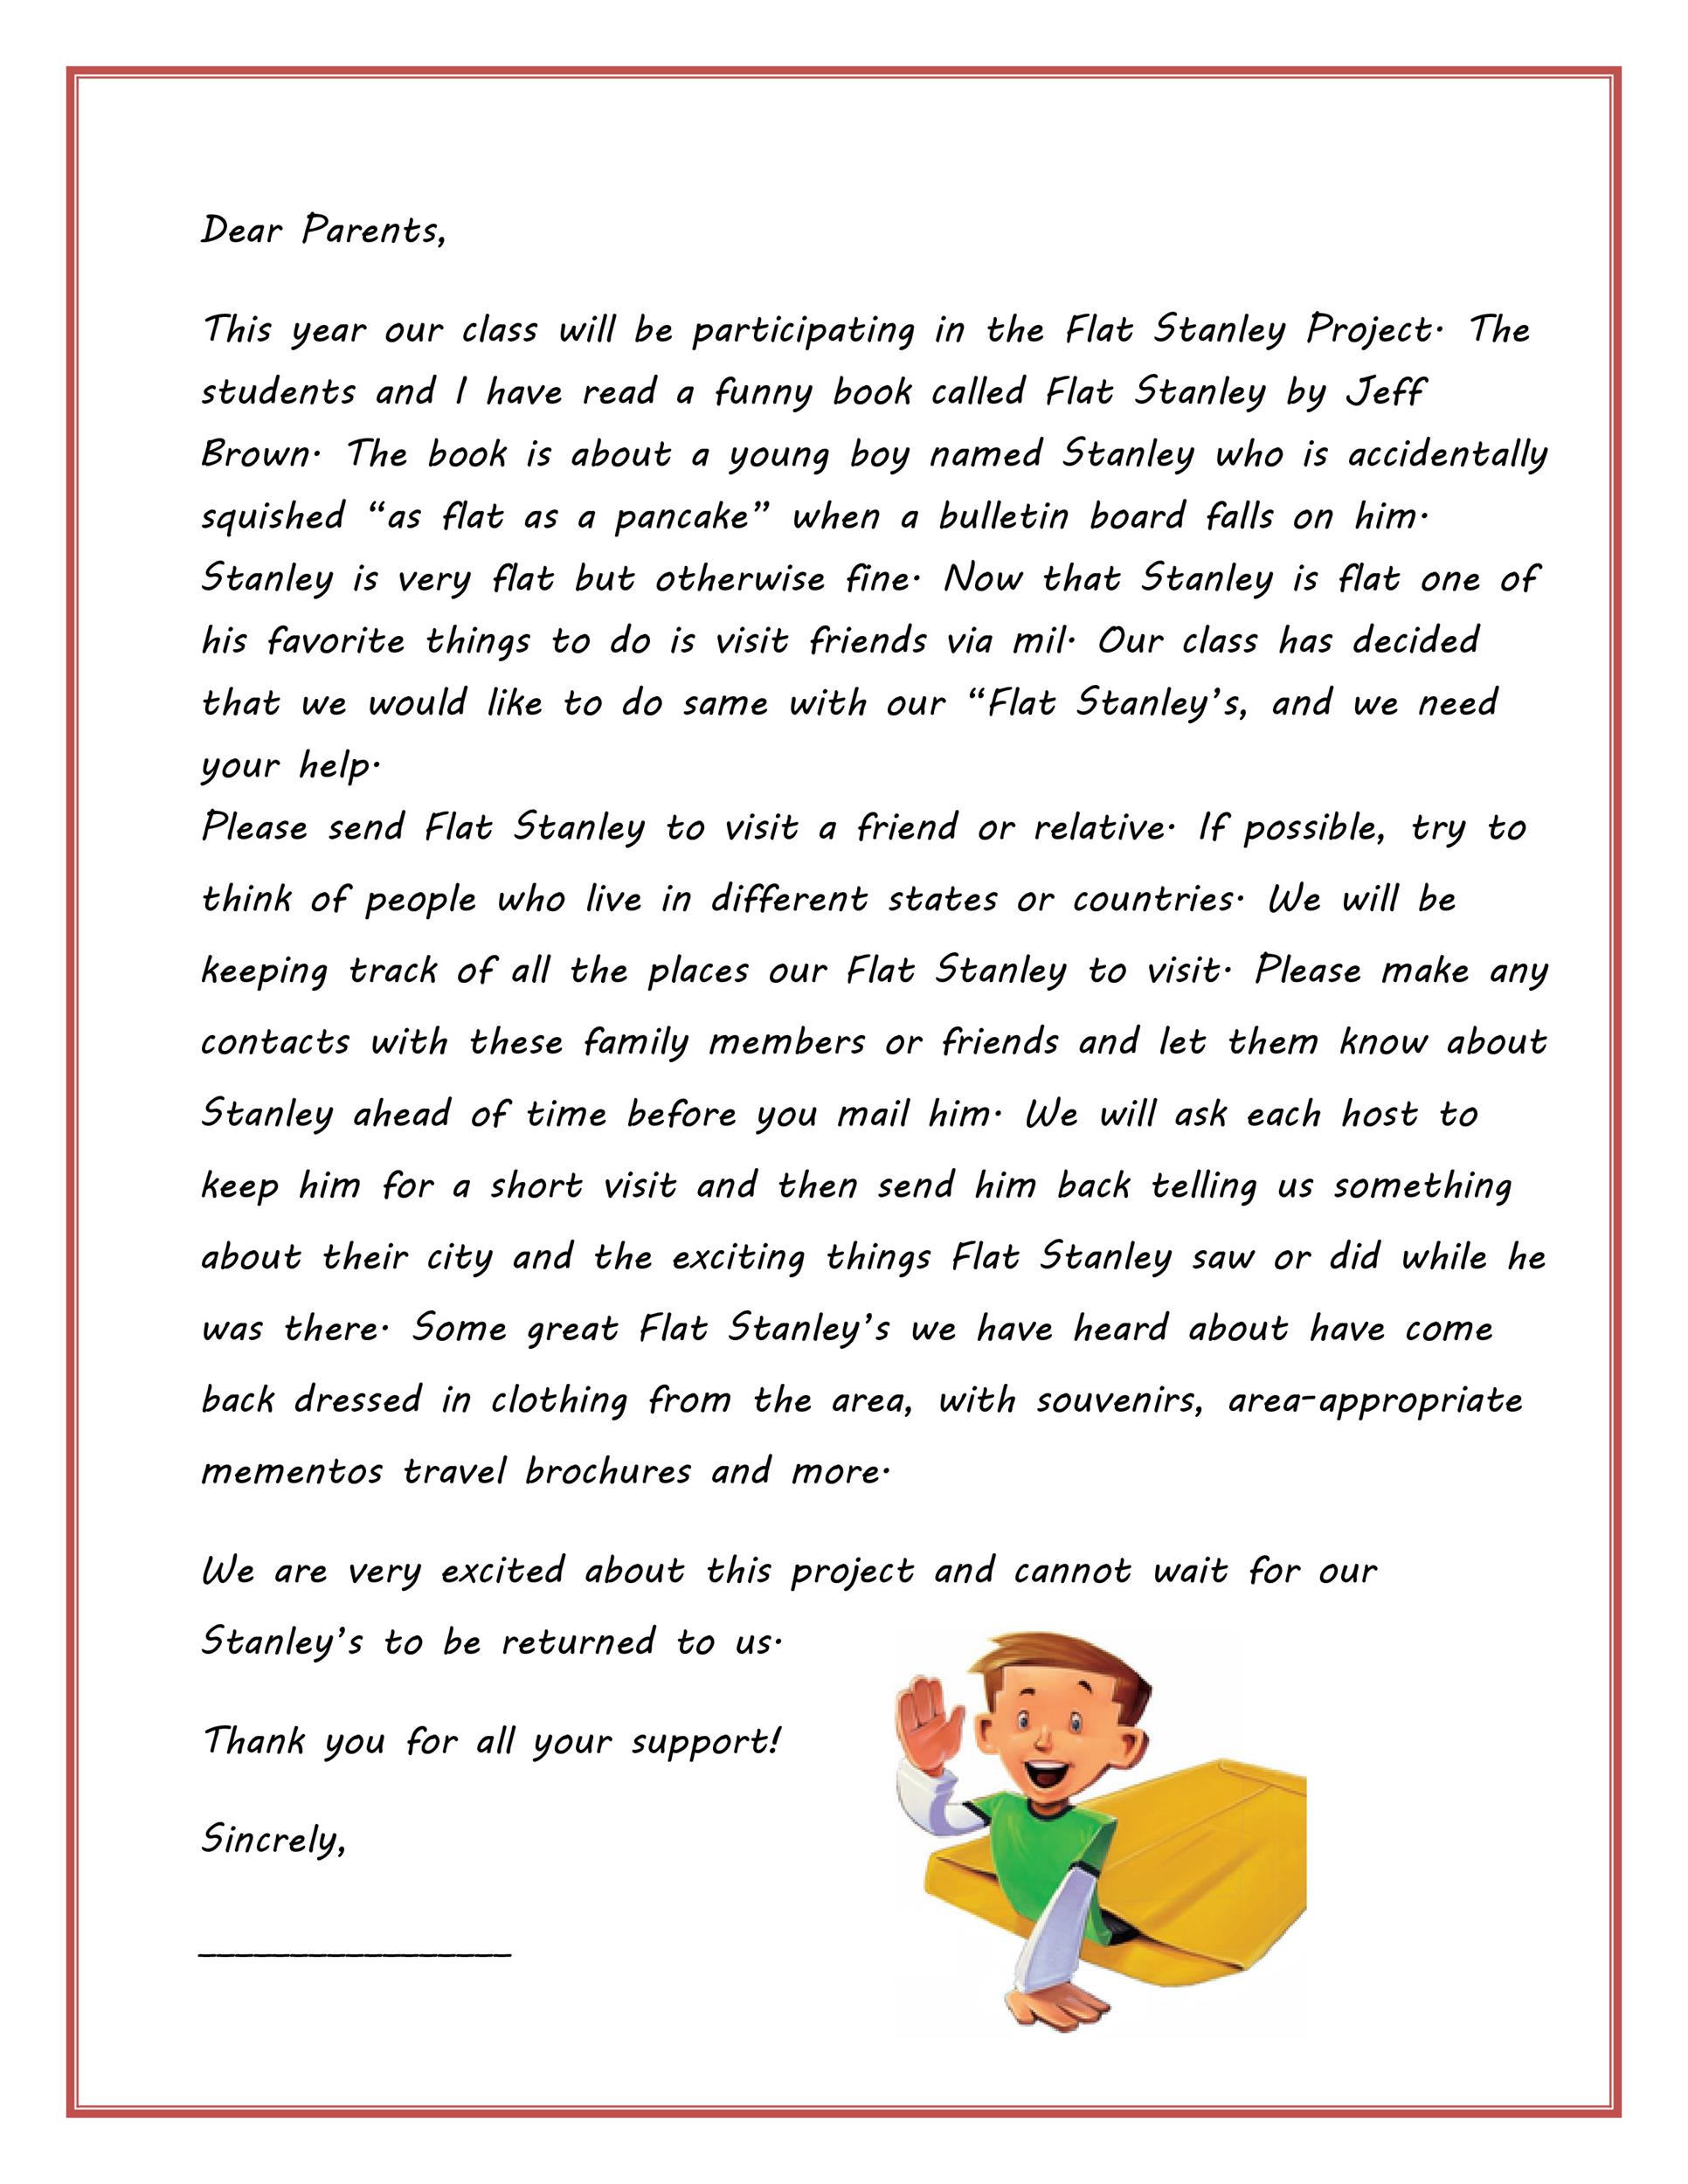 37 Flat Stanley Templates & Letter Examples - Template Lab